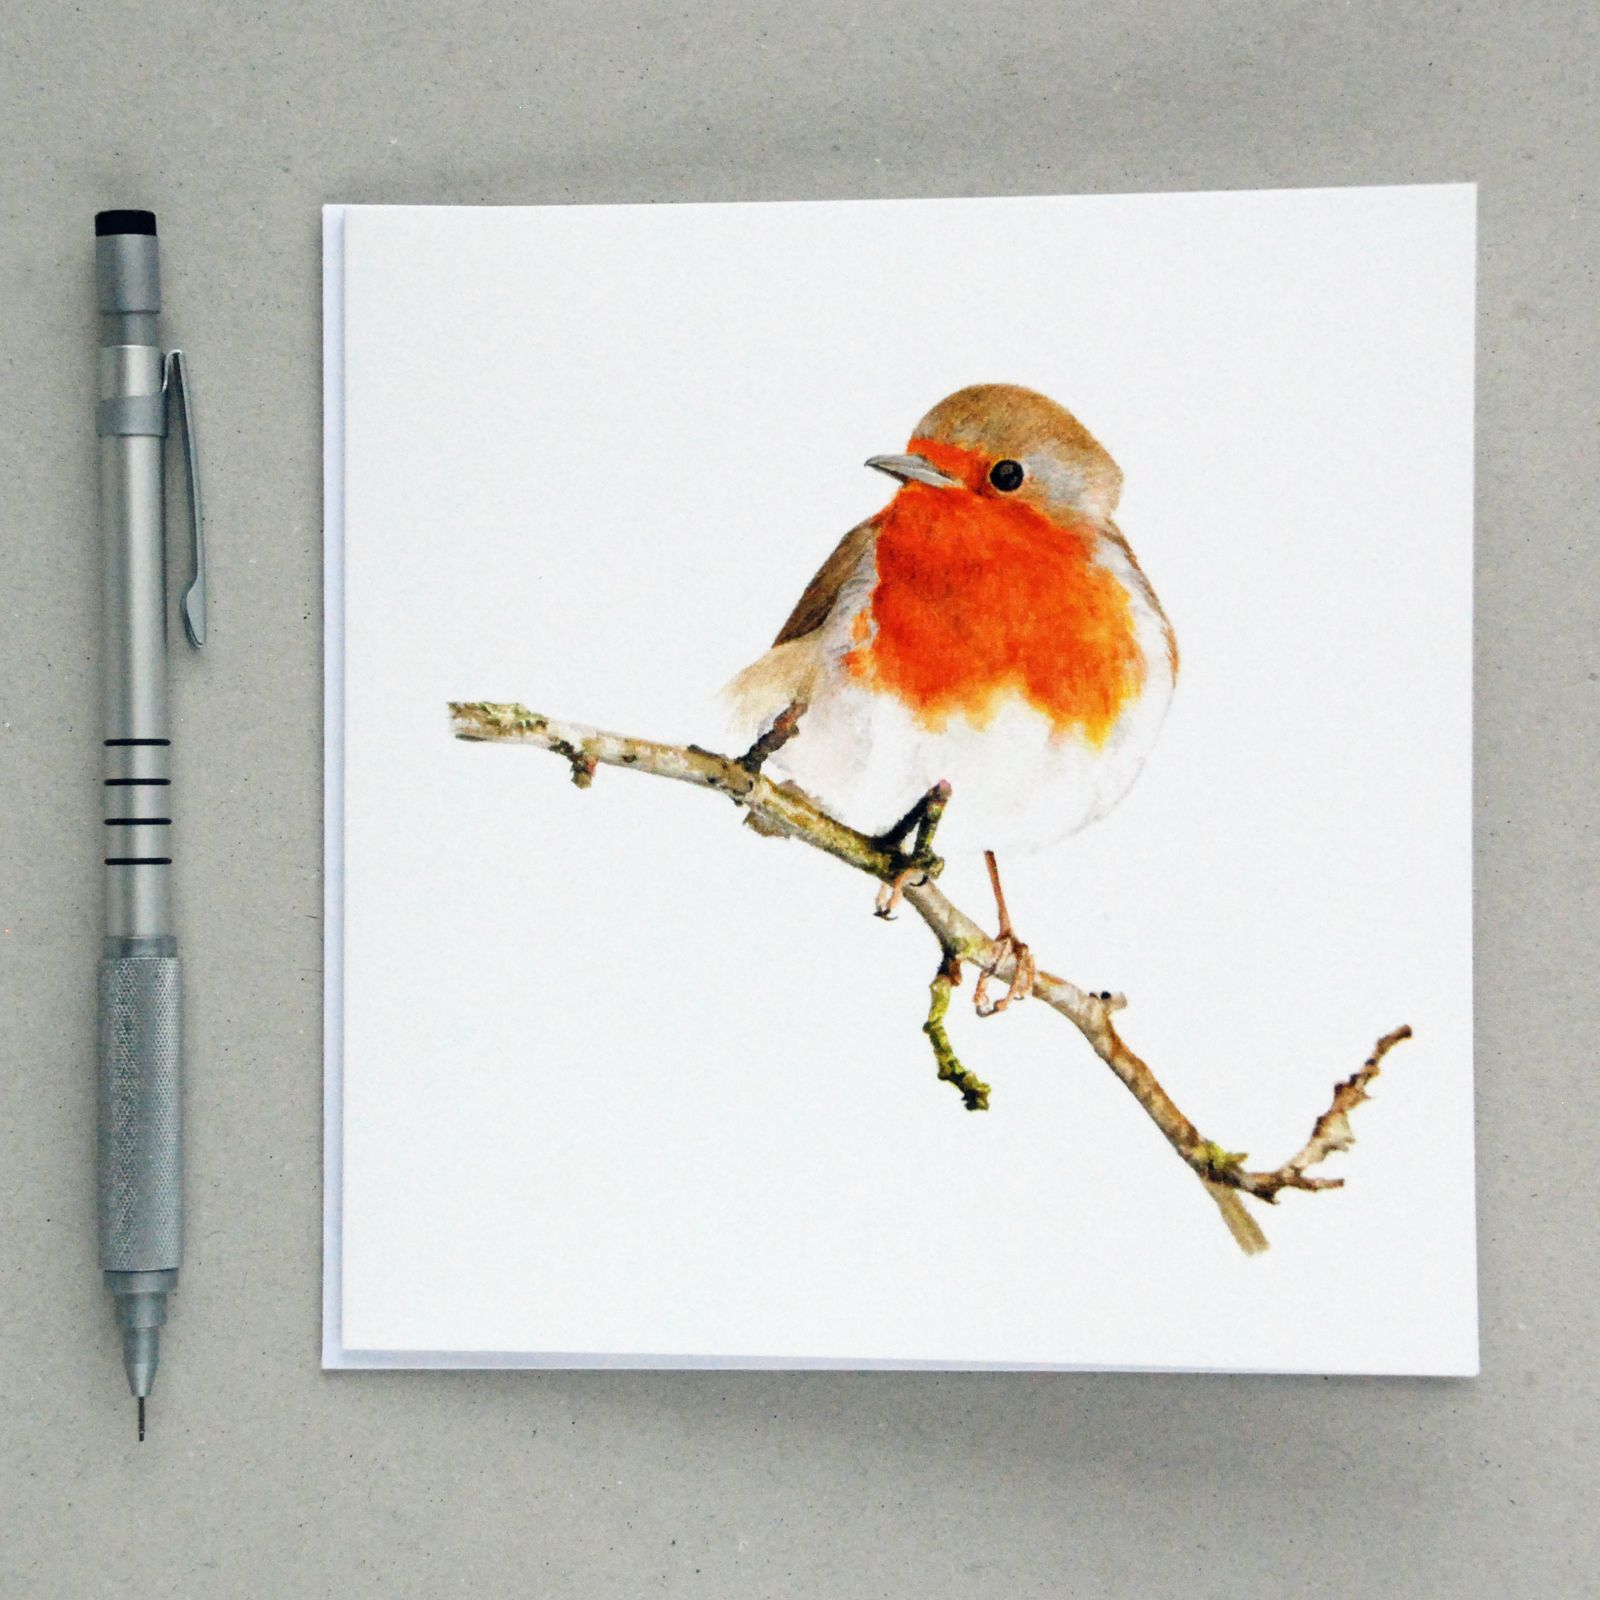 greetings cards for all occasions